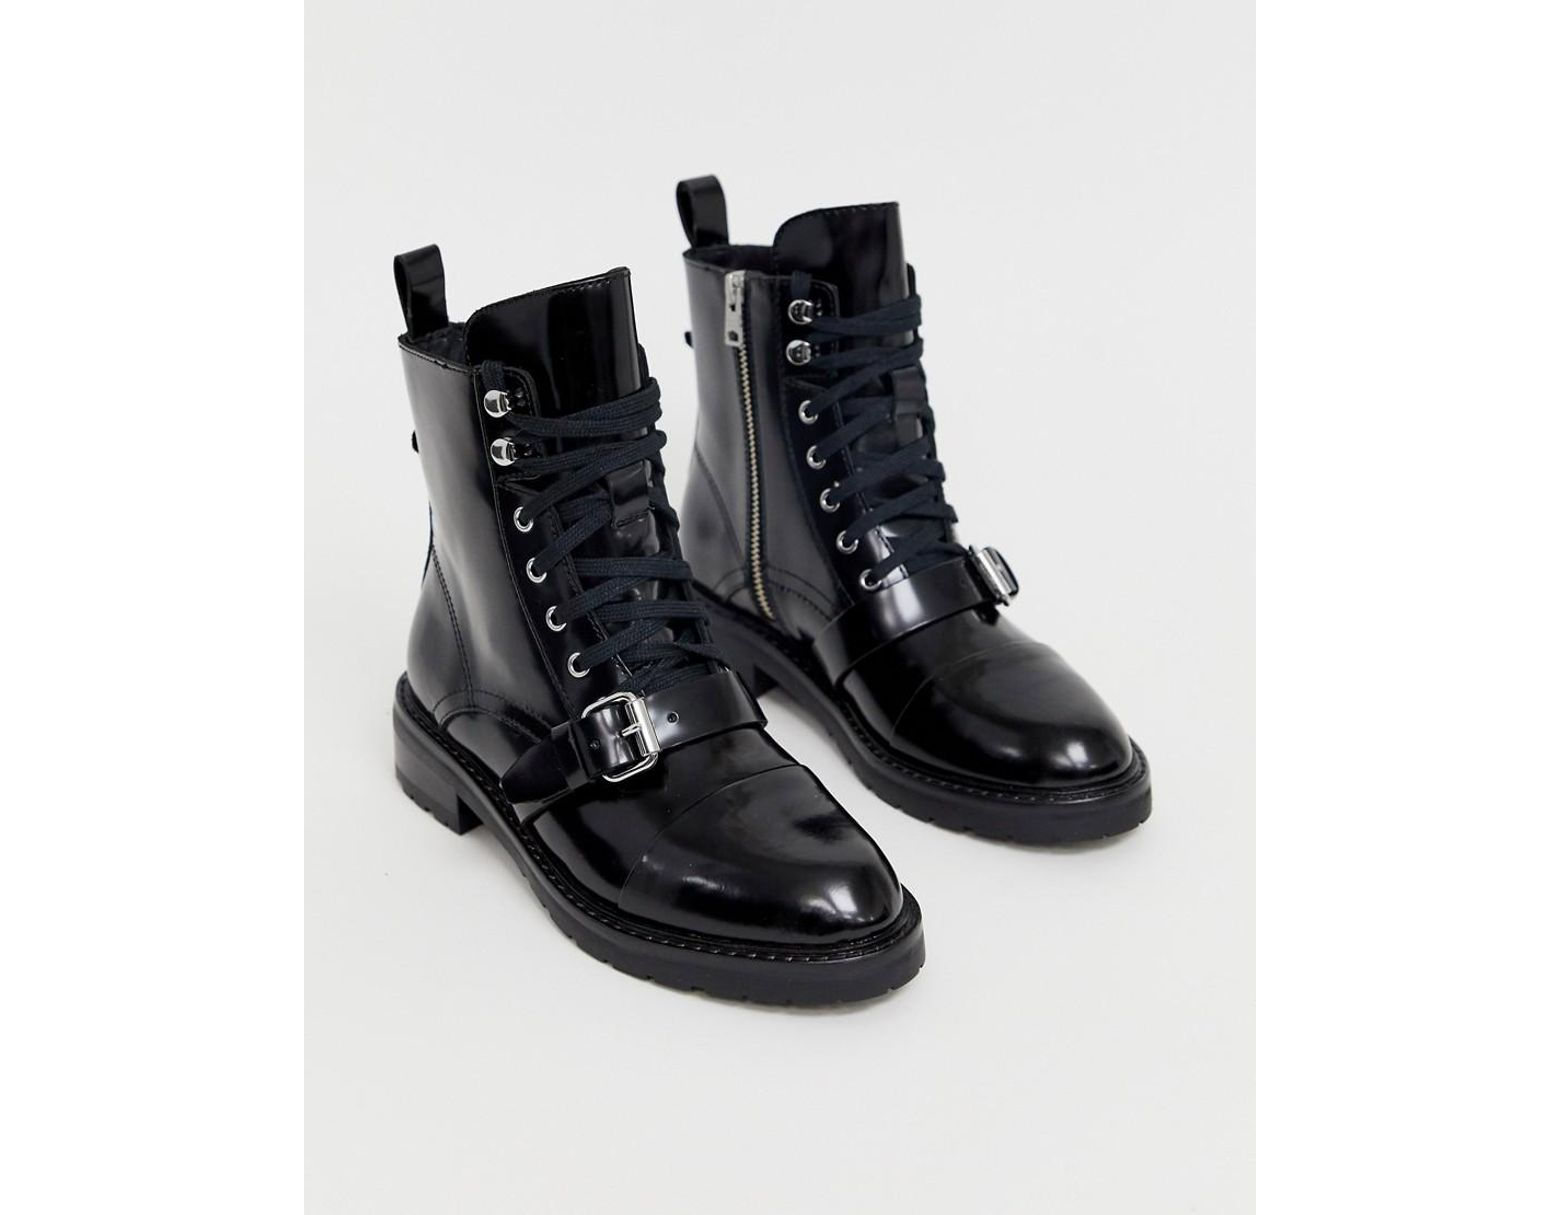 de2ebba1e06 AllSaints Donita Leather Lace Up Hiking Boot With Buckle in Black - Lyst